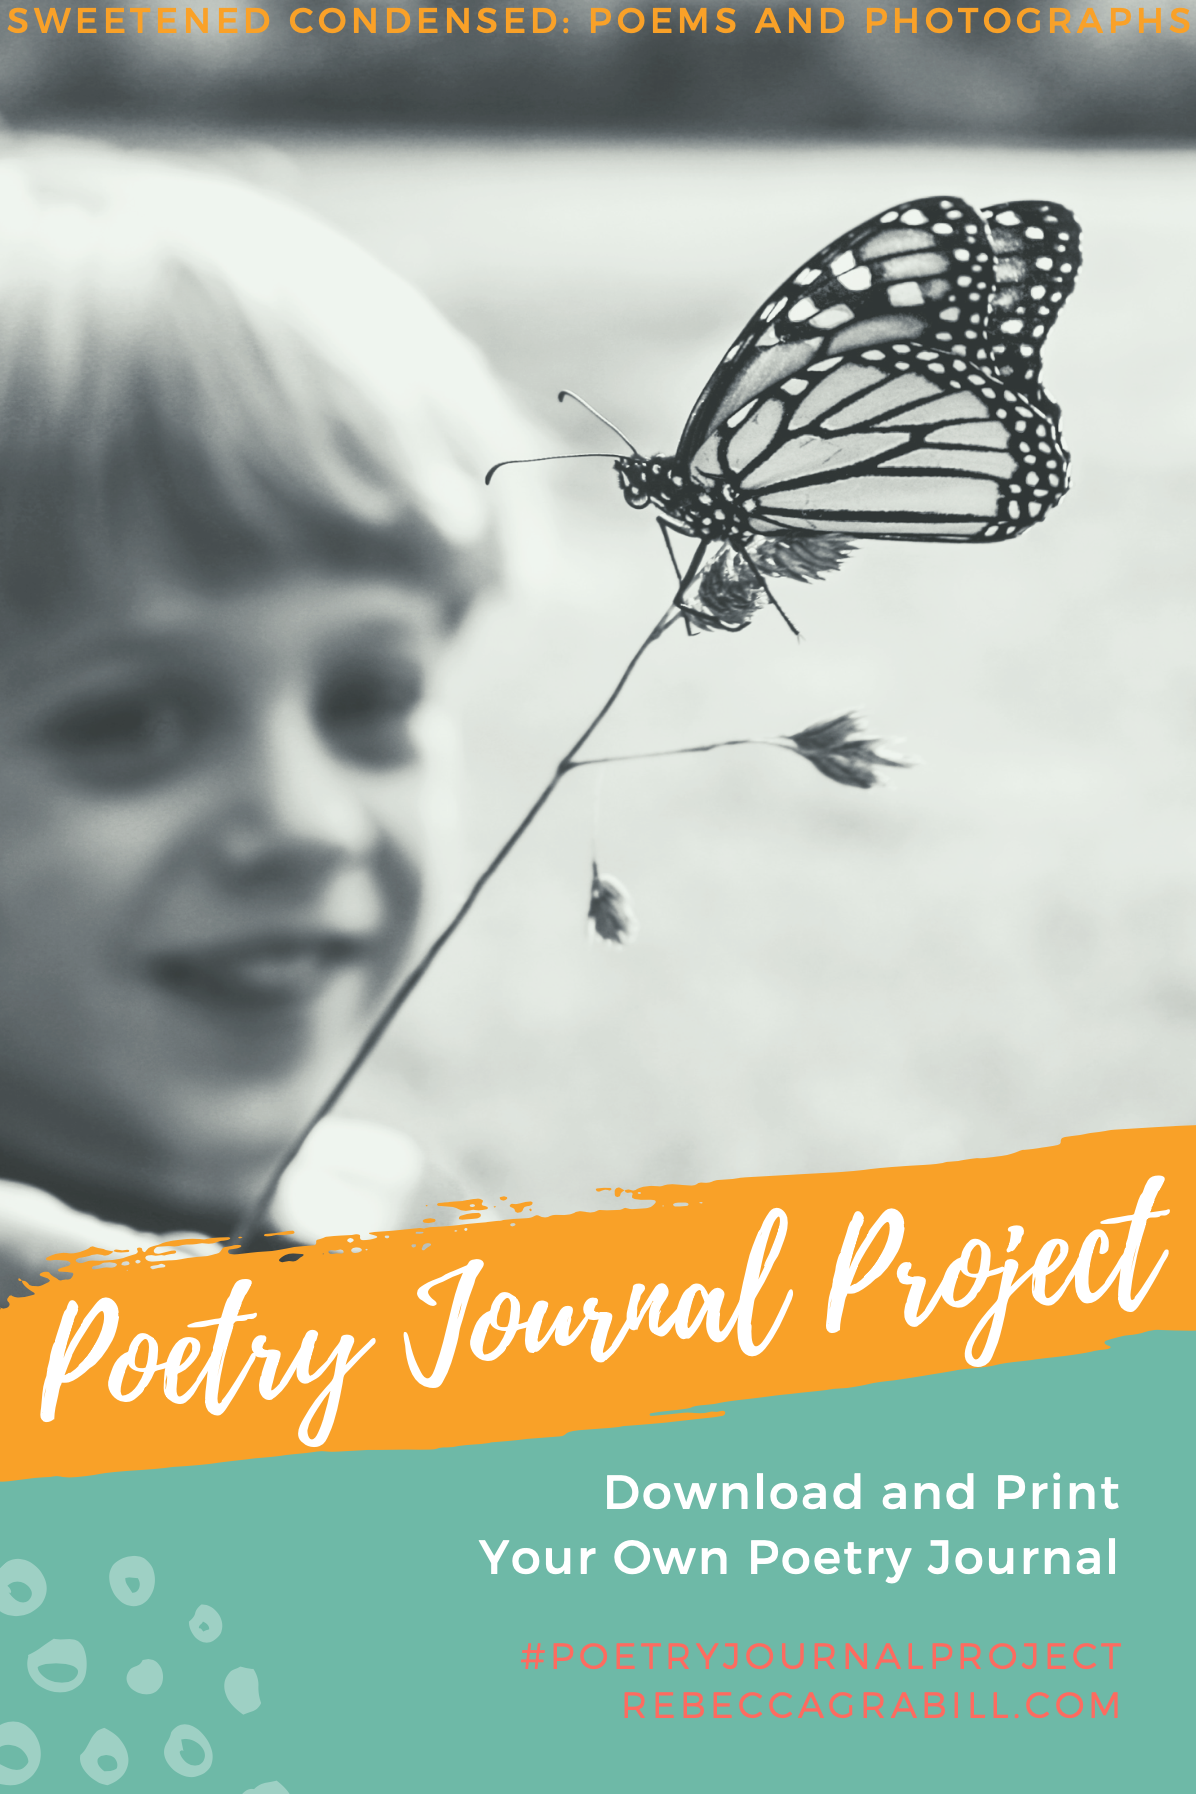 Download your free poetry journal for #poetryjournalproject. Make poetry a part of life! Don't forget to order Sweetened Condensed by Rebecca Grabill